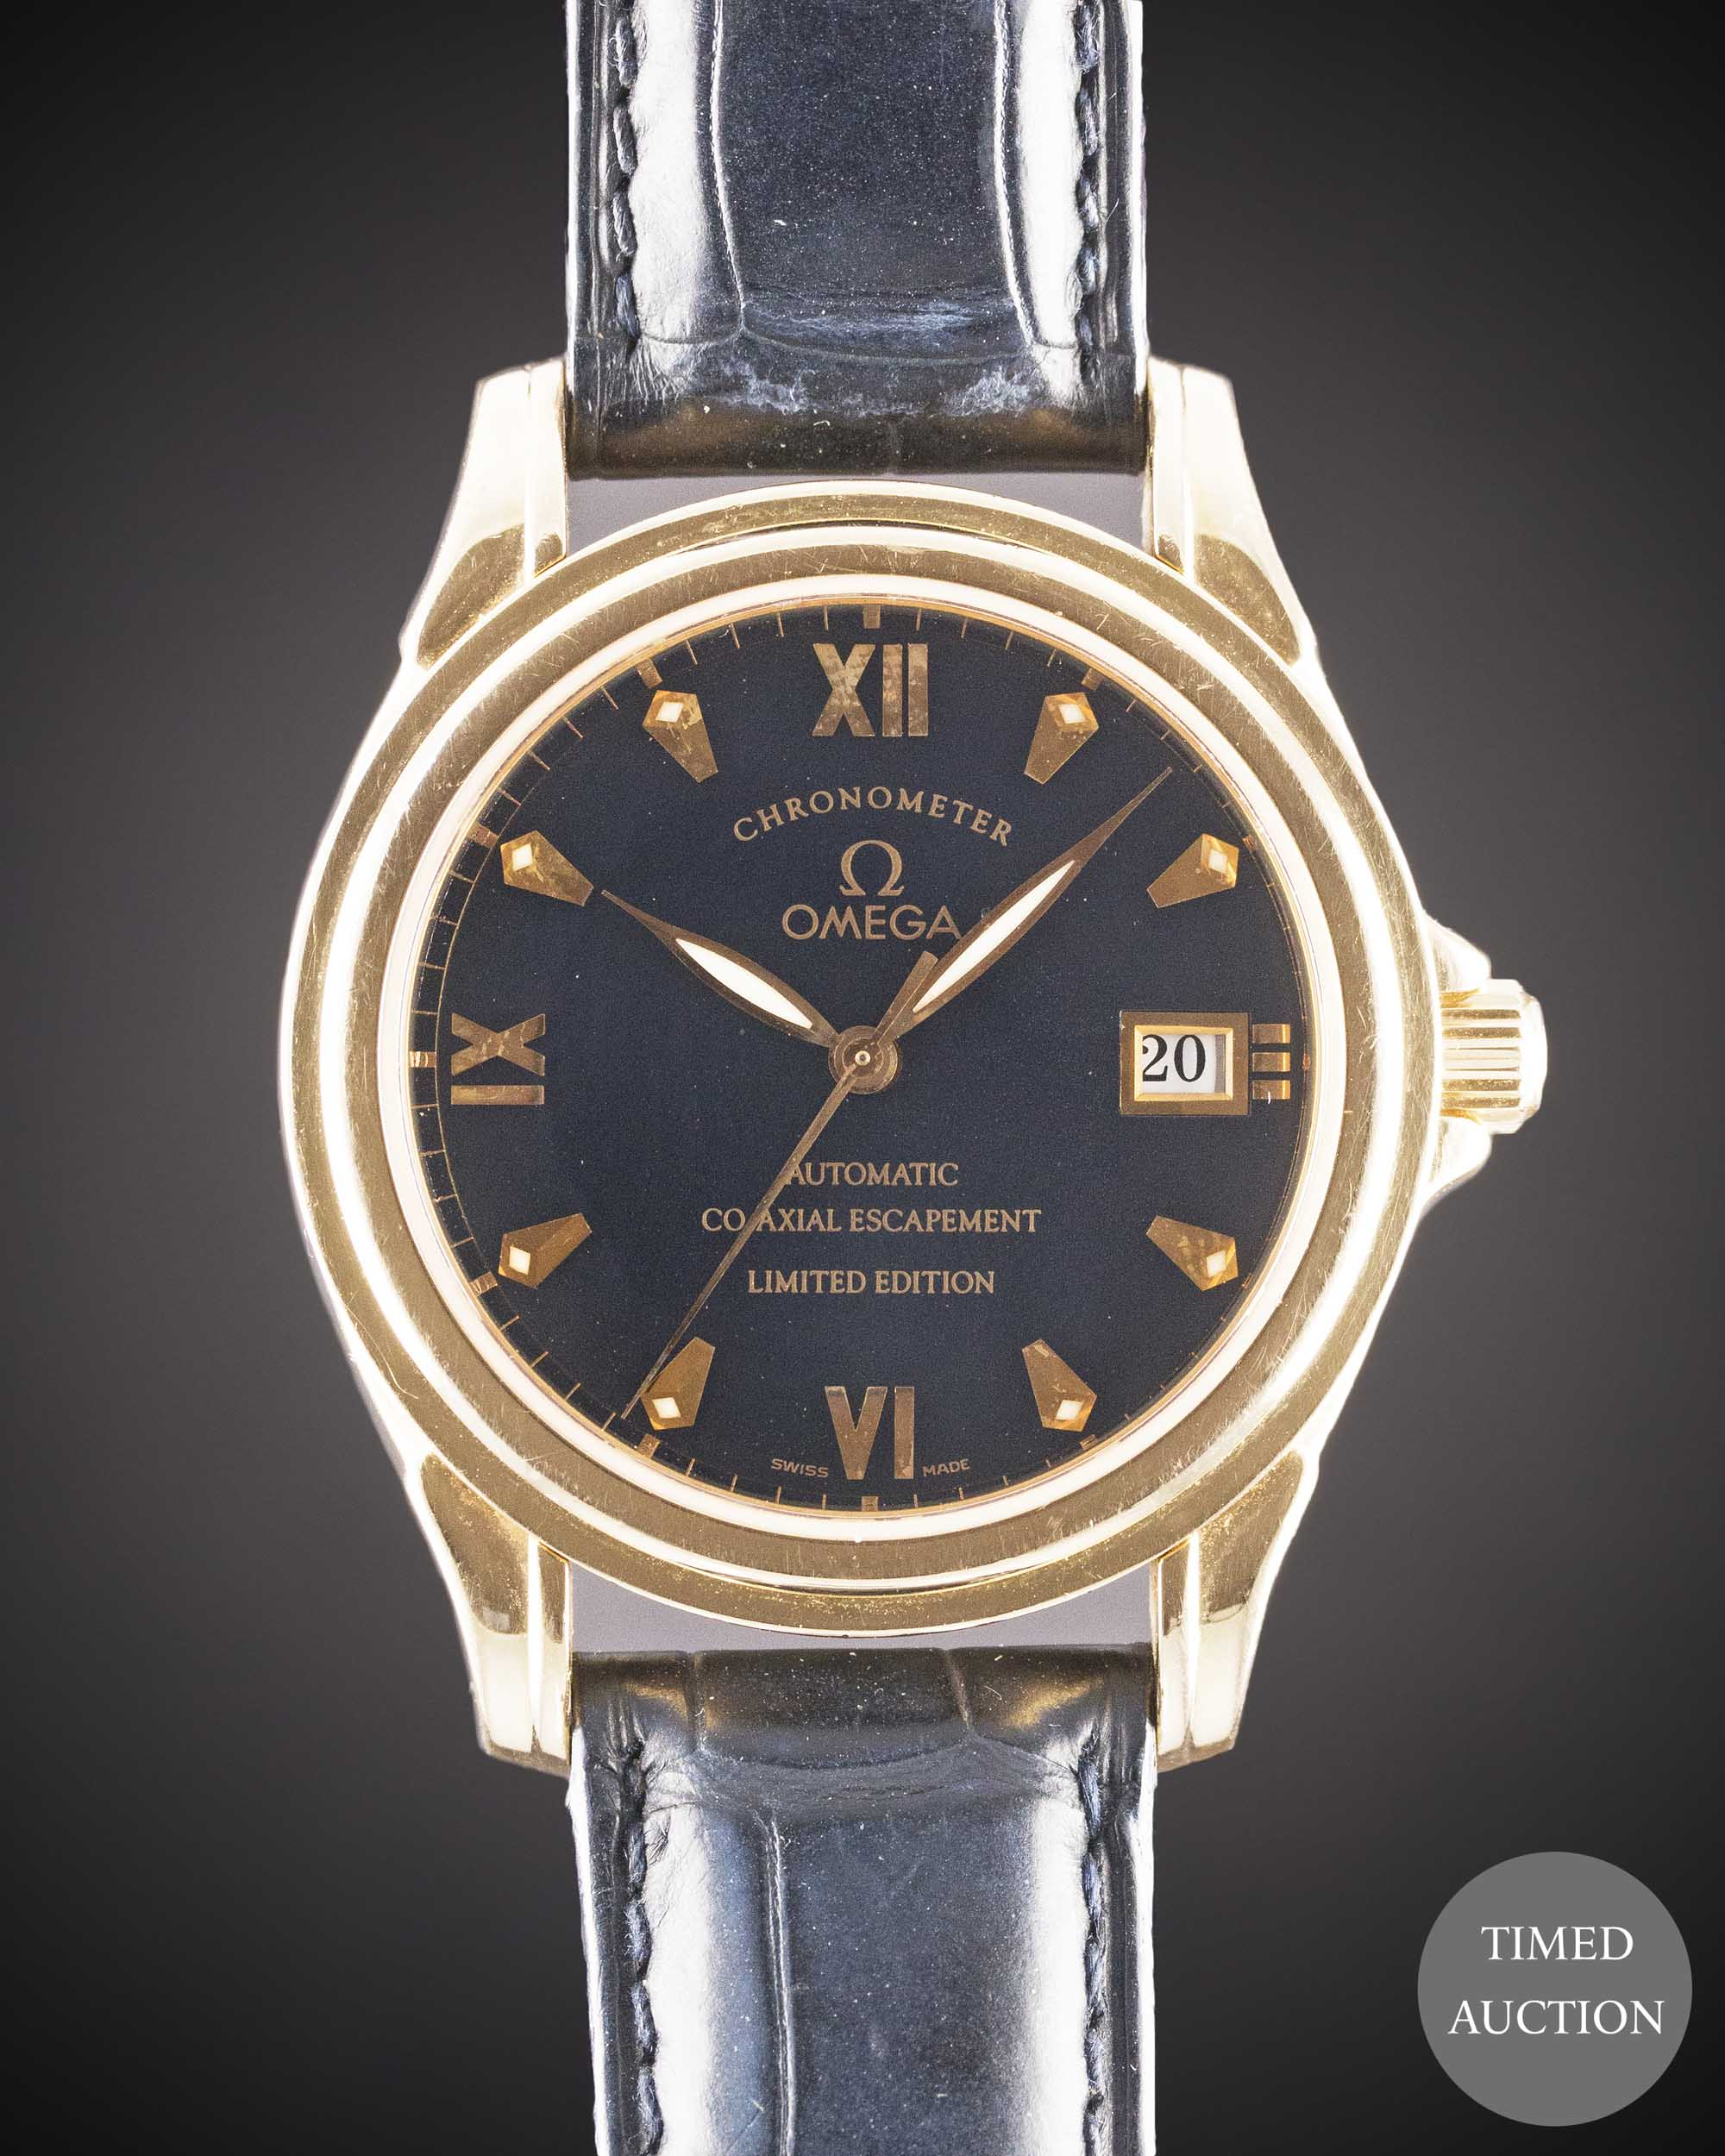 Lot 13 - A GENTLEMAN'S 18K SOLID ROSE GOLD OMEGA DE VILLE CO-AXIAL ESCAPEMENT AUTOMATIC CHRONOMETER WRIST